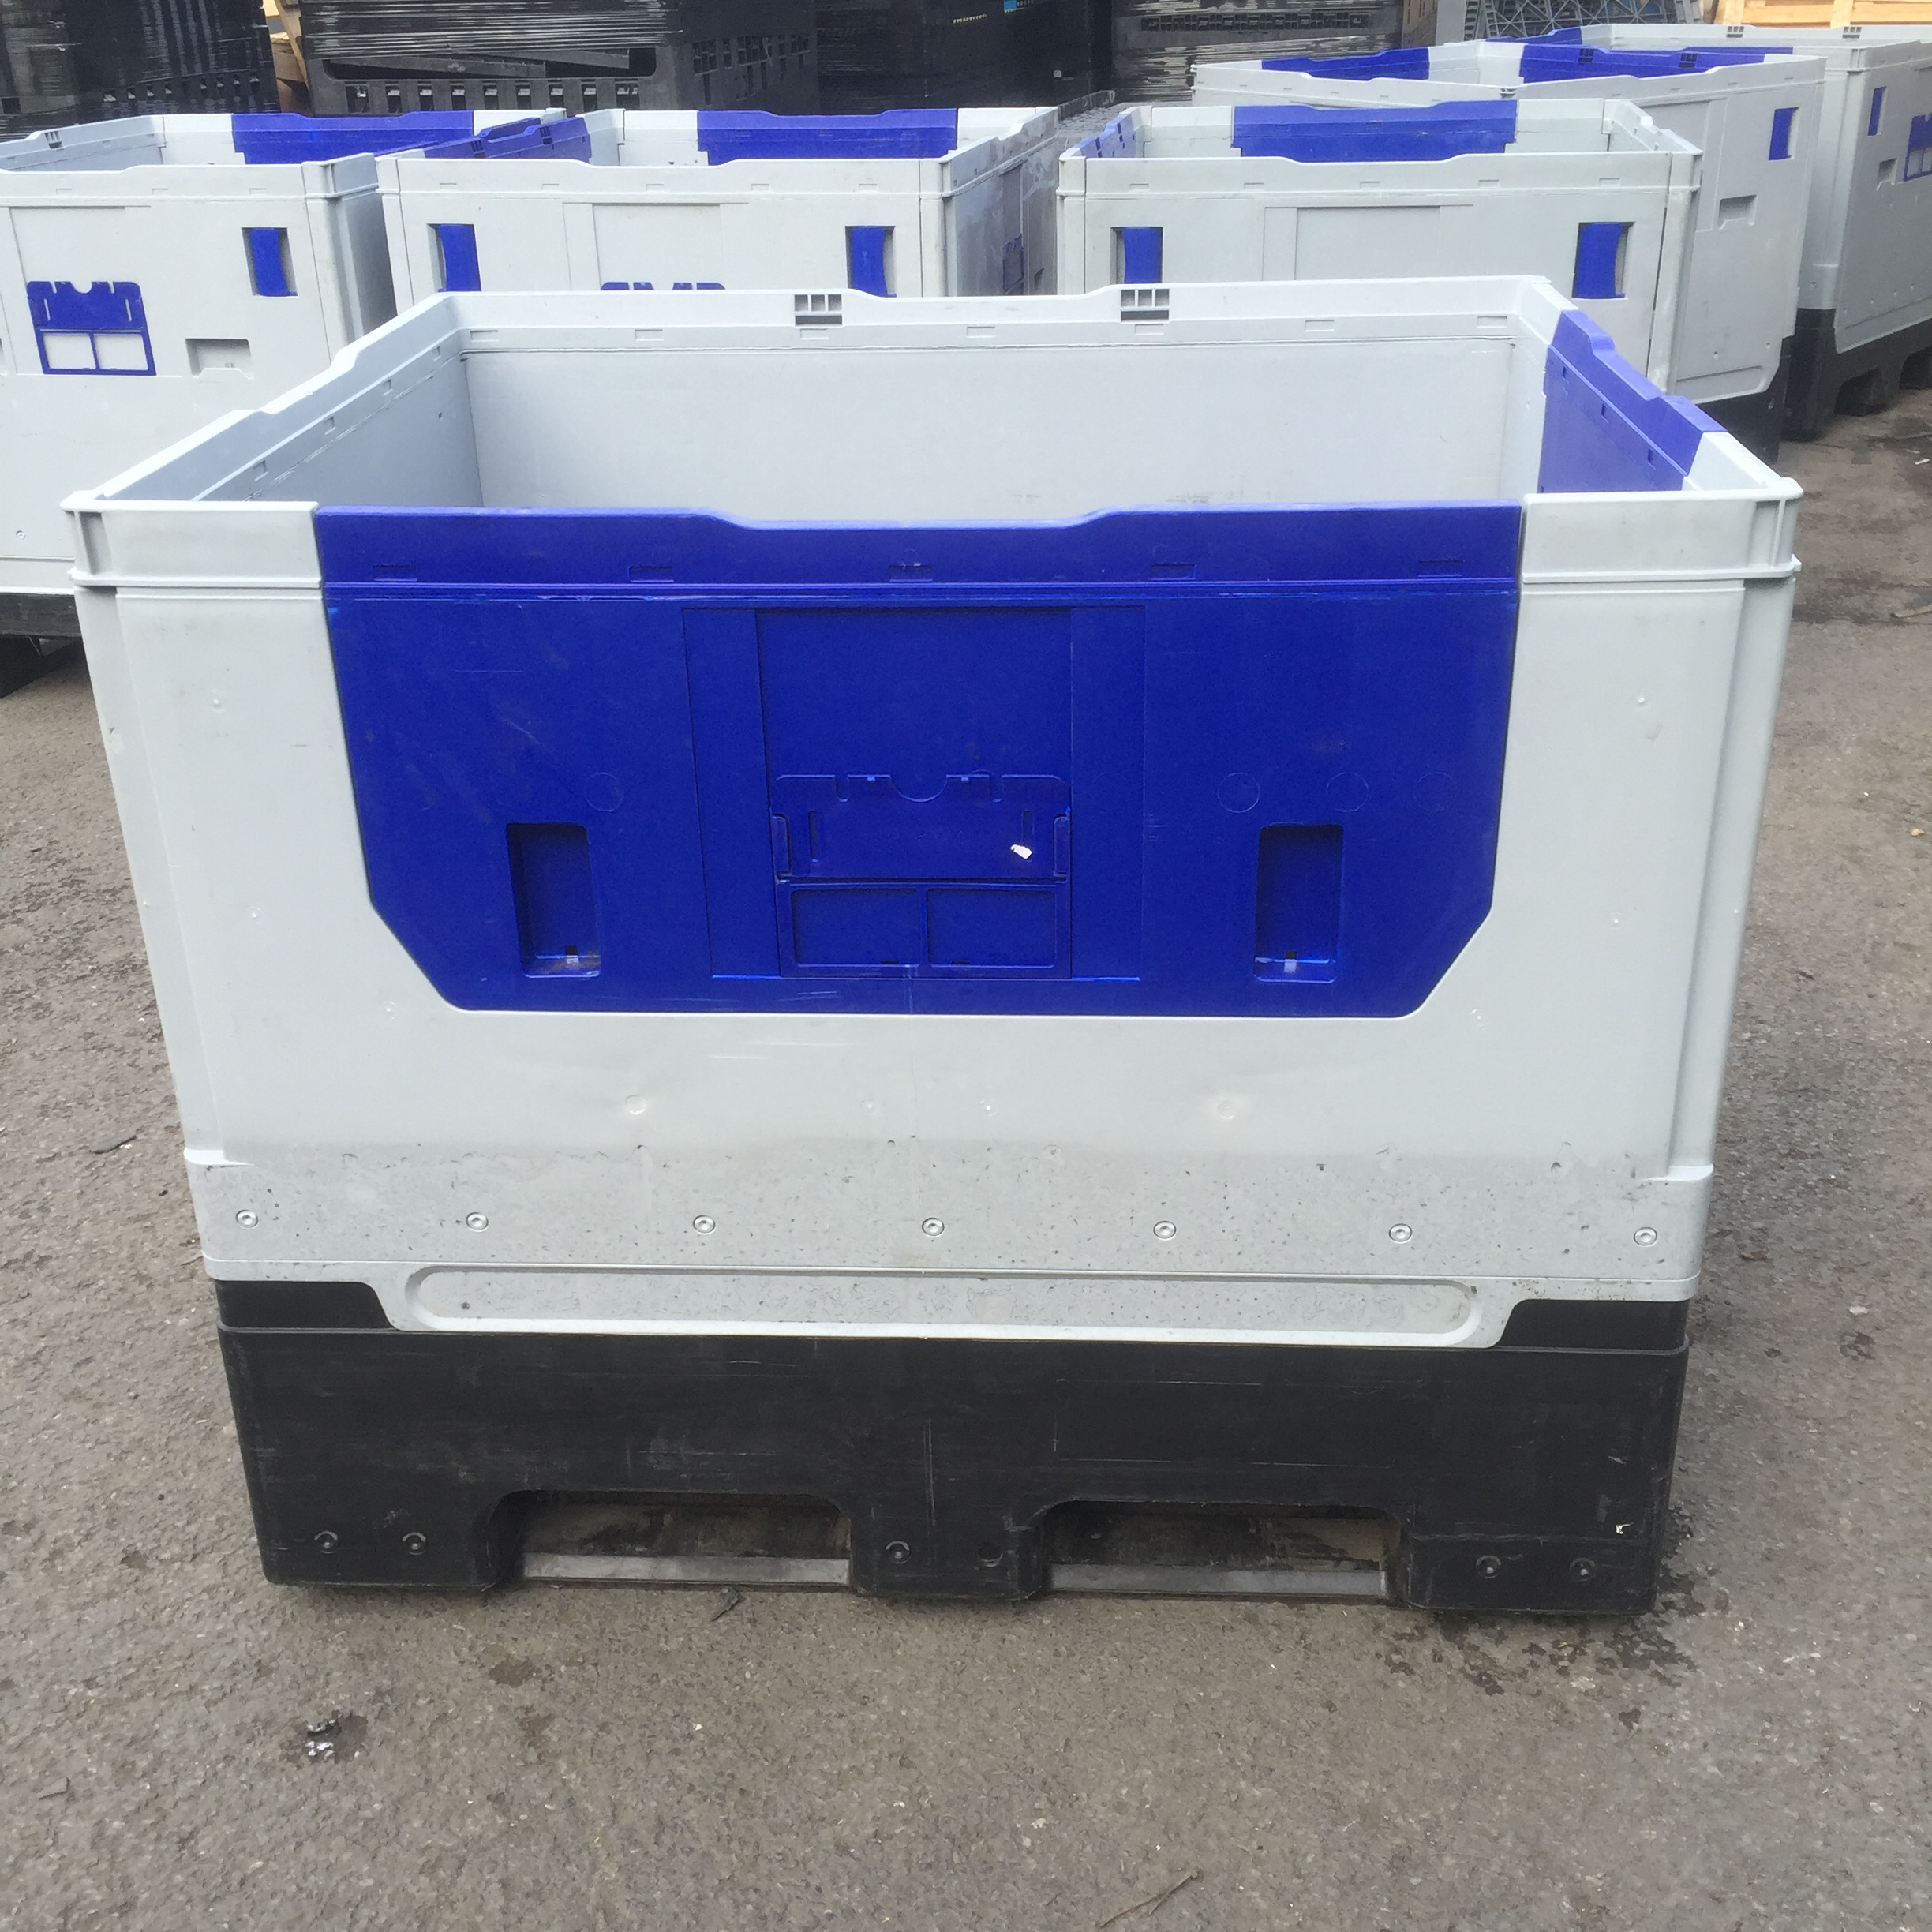 KF975_1 Reconditioned Bulk Containers - Plastic Mouldings Northern